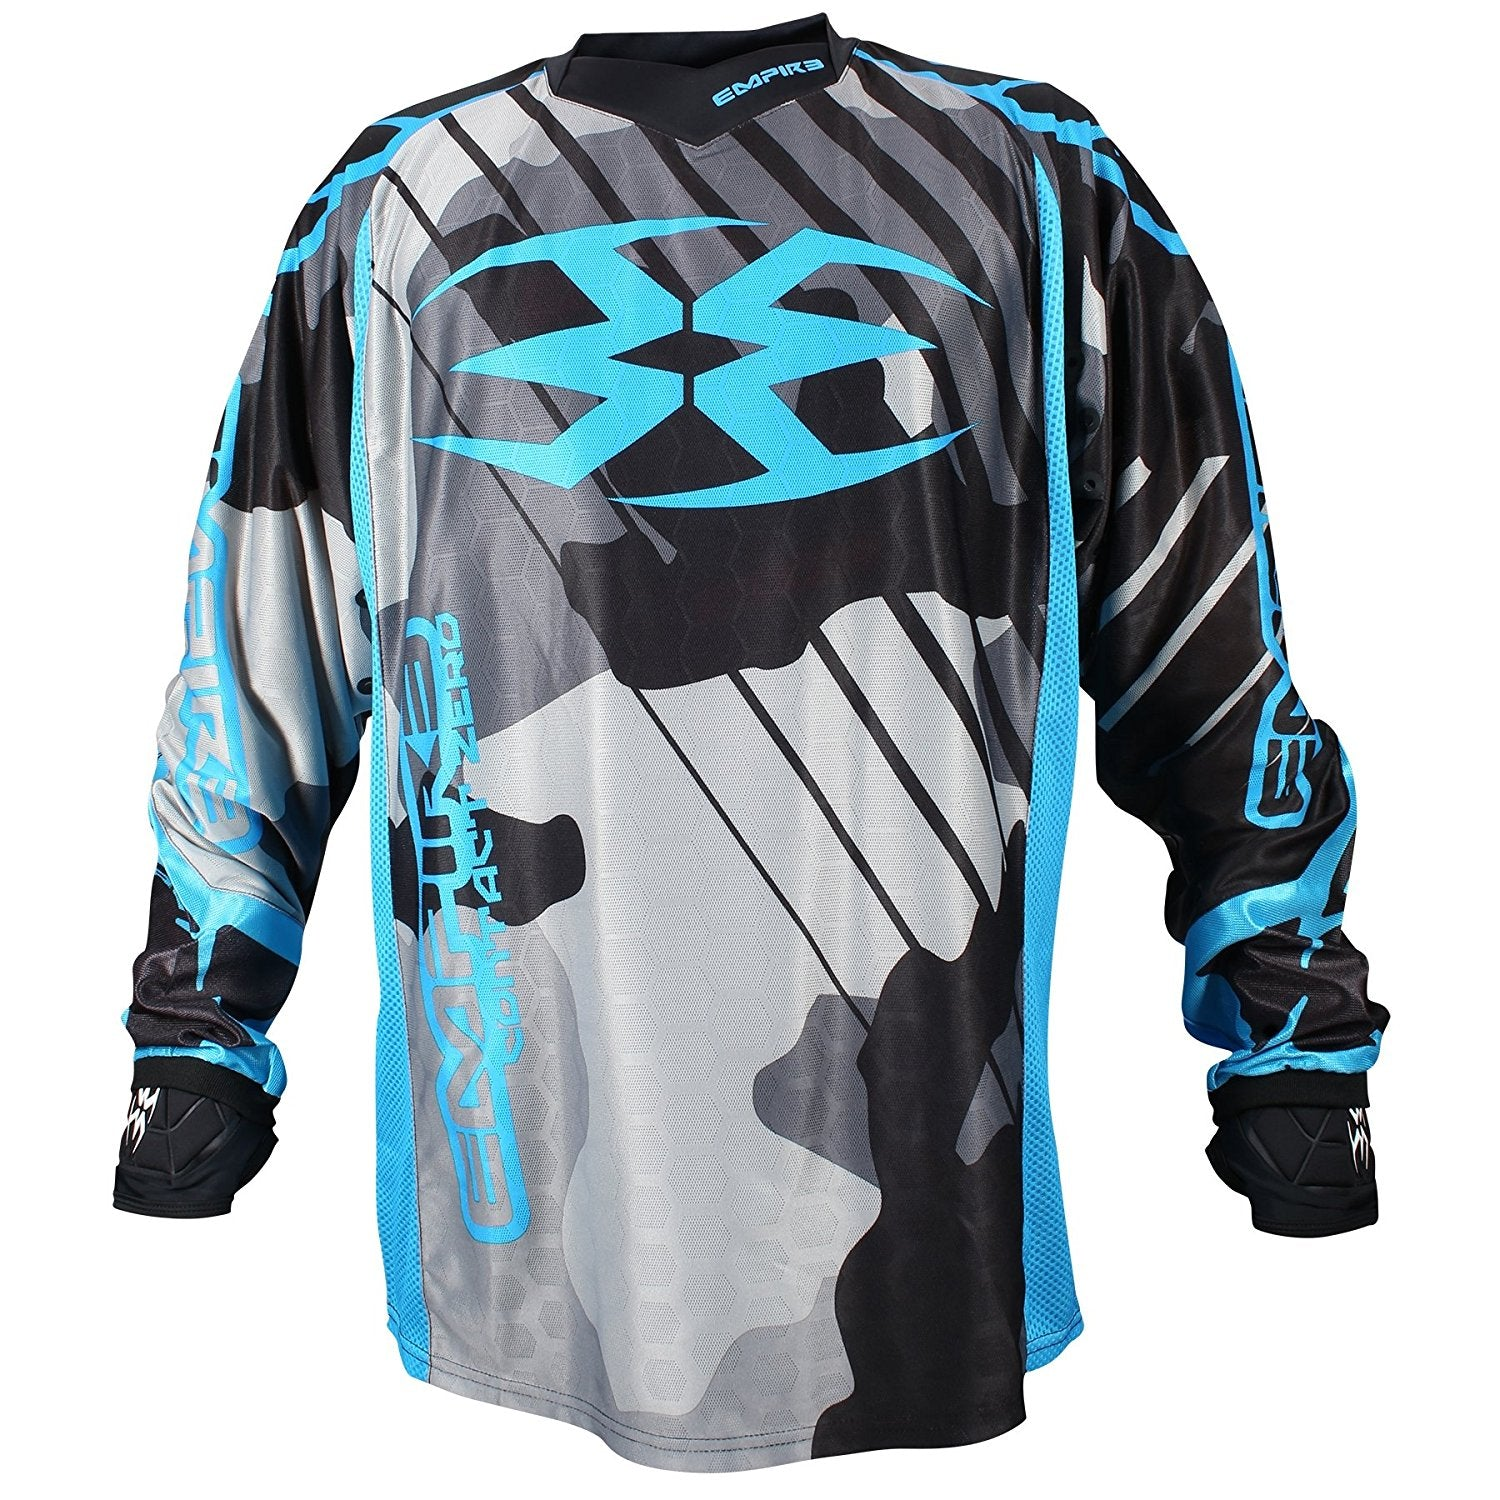 Photos of Empire Contact Zero F6 Jersey - Blue - Large. Photo taken by drpaintball.com